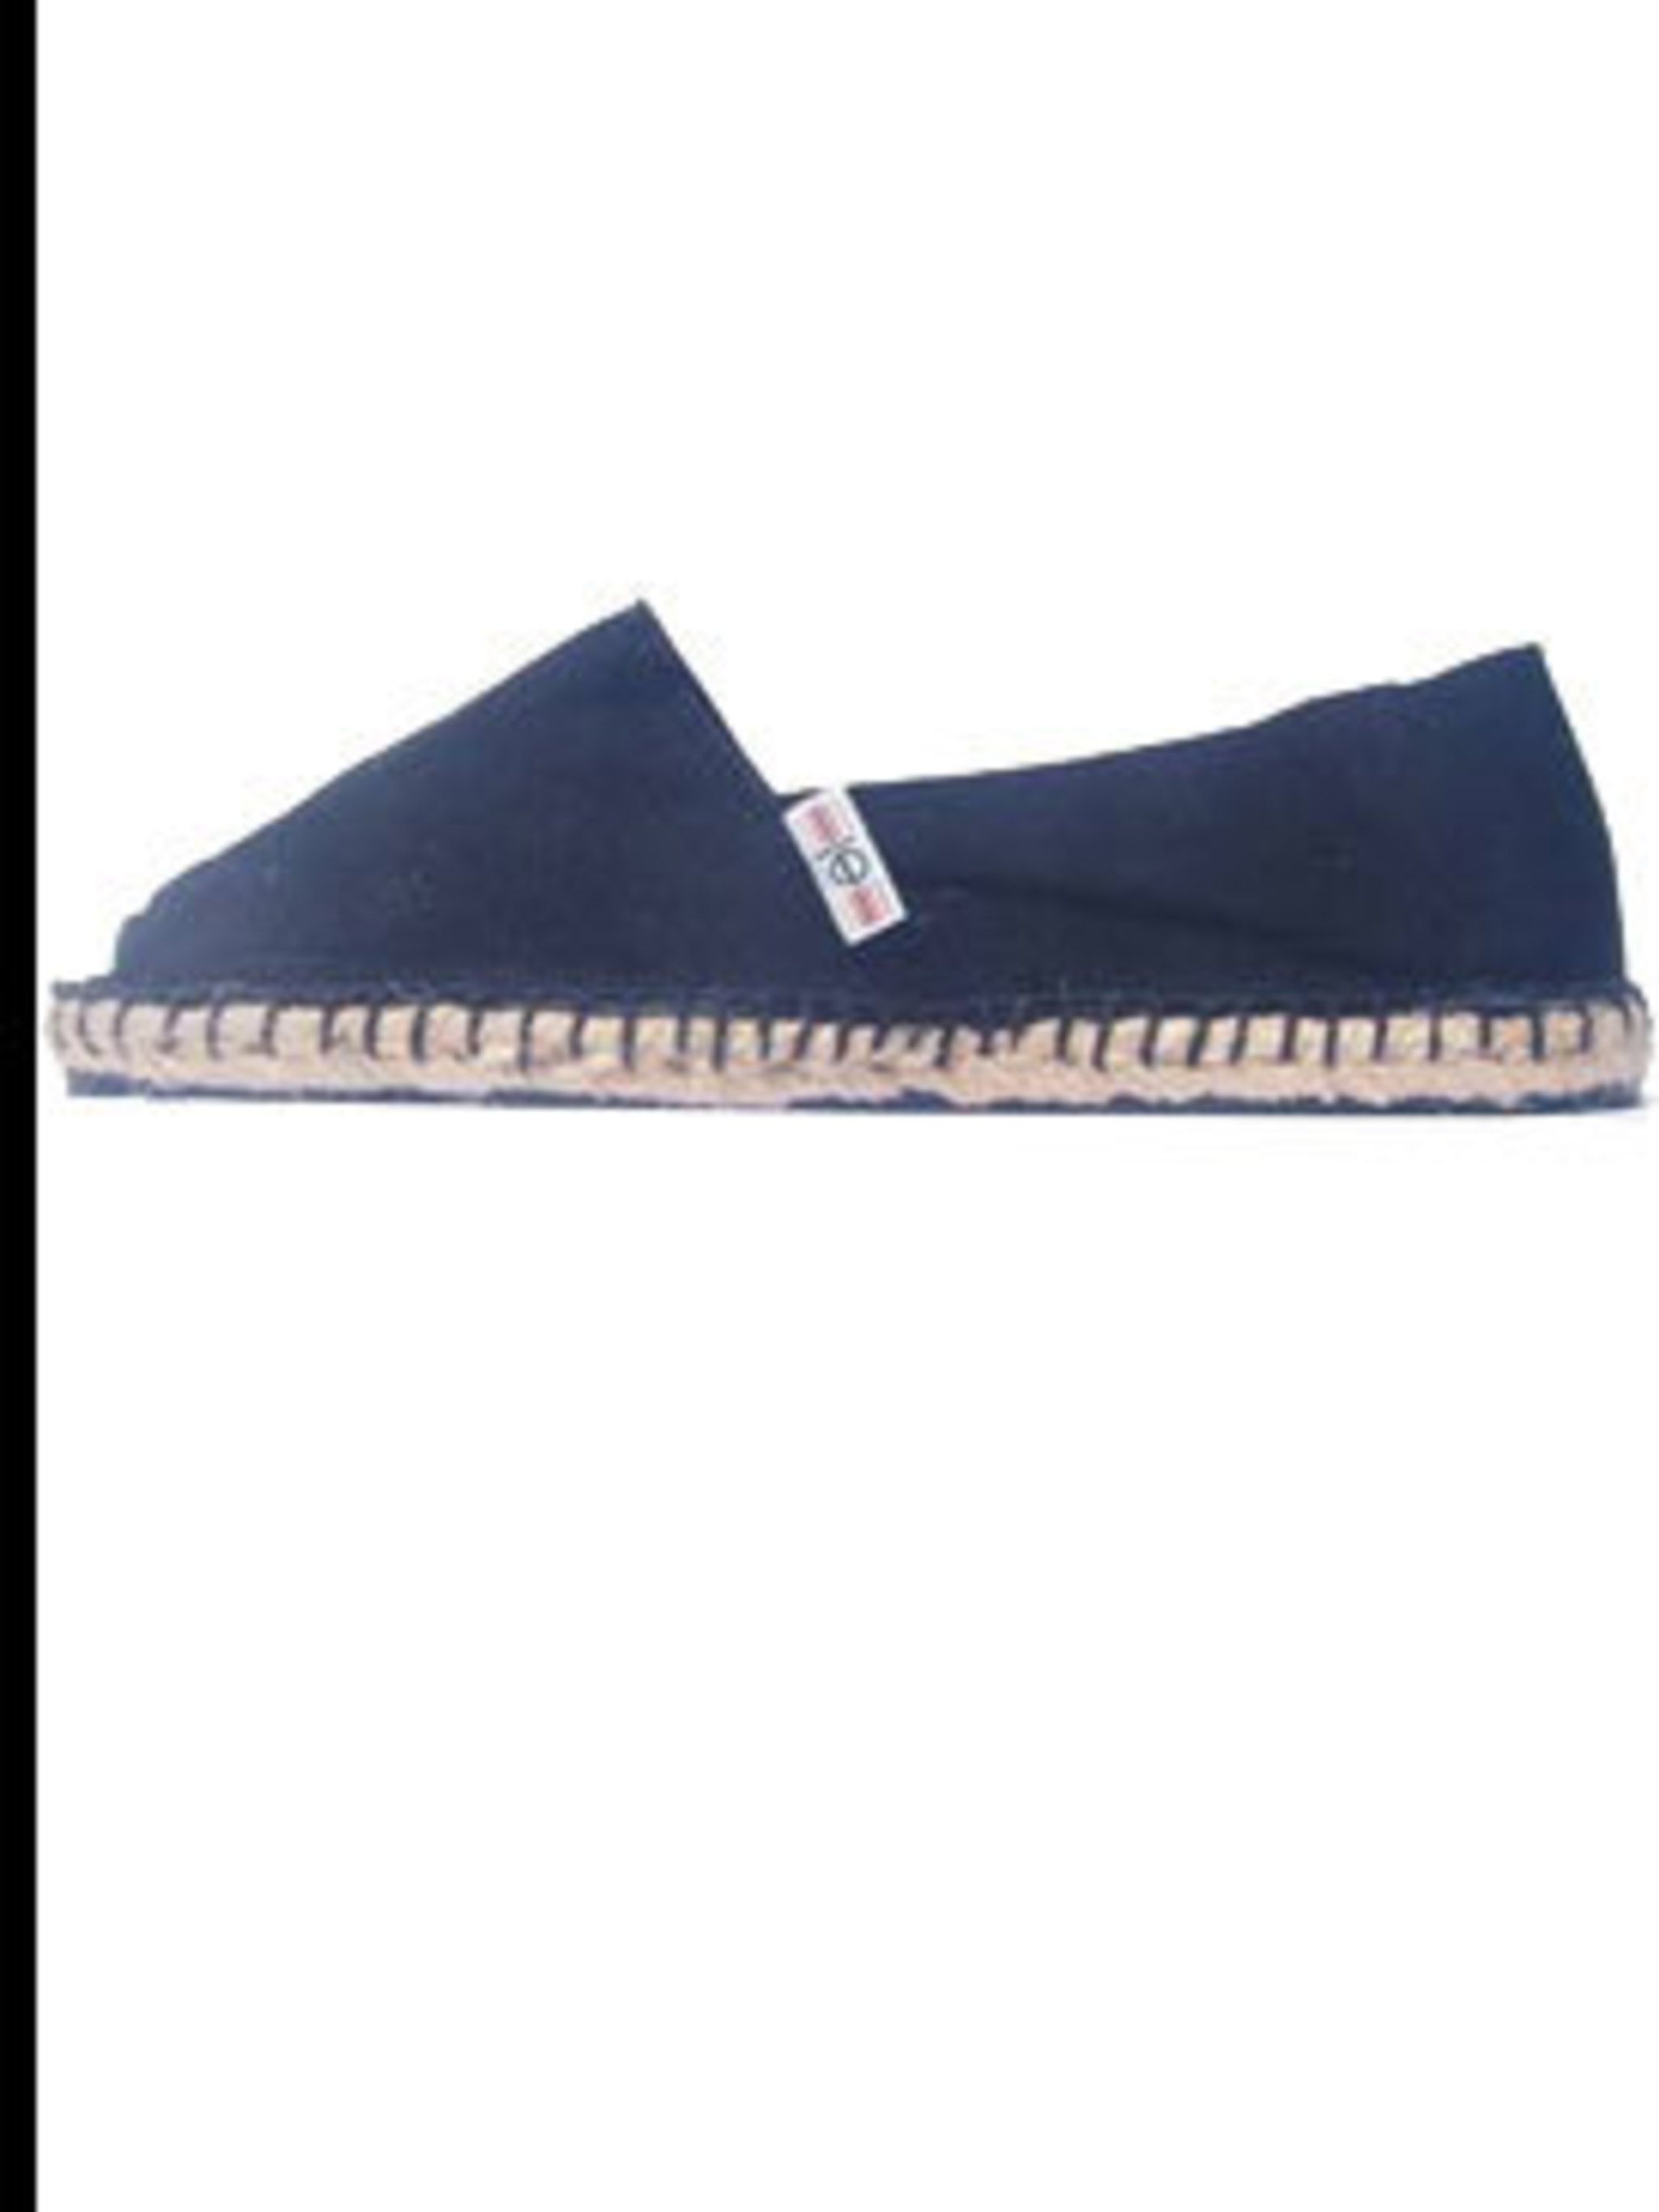 "<p>Blue espadrilles, £20, by <a href=""http://www.loveespadrilles.com/espadrilles/gau.html"">Love</a></p>"